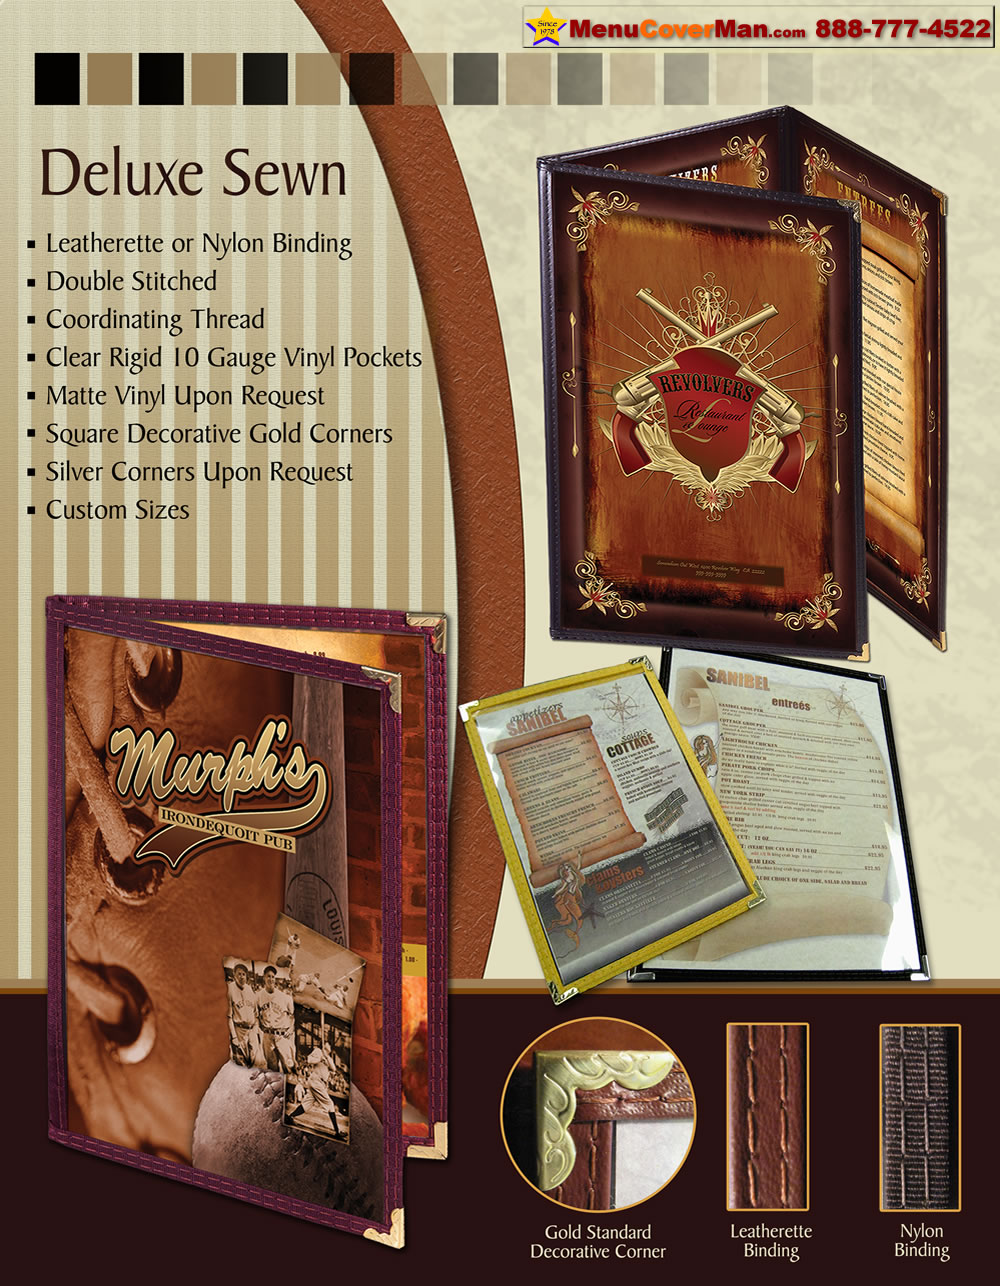 Menucoverman.com #DS-LEA-TEDD-8.5X14 - Deluxe Sewn Menu Covers - 4 Pocket Booklet Style - 8 View #1002375